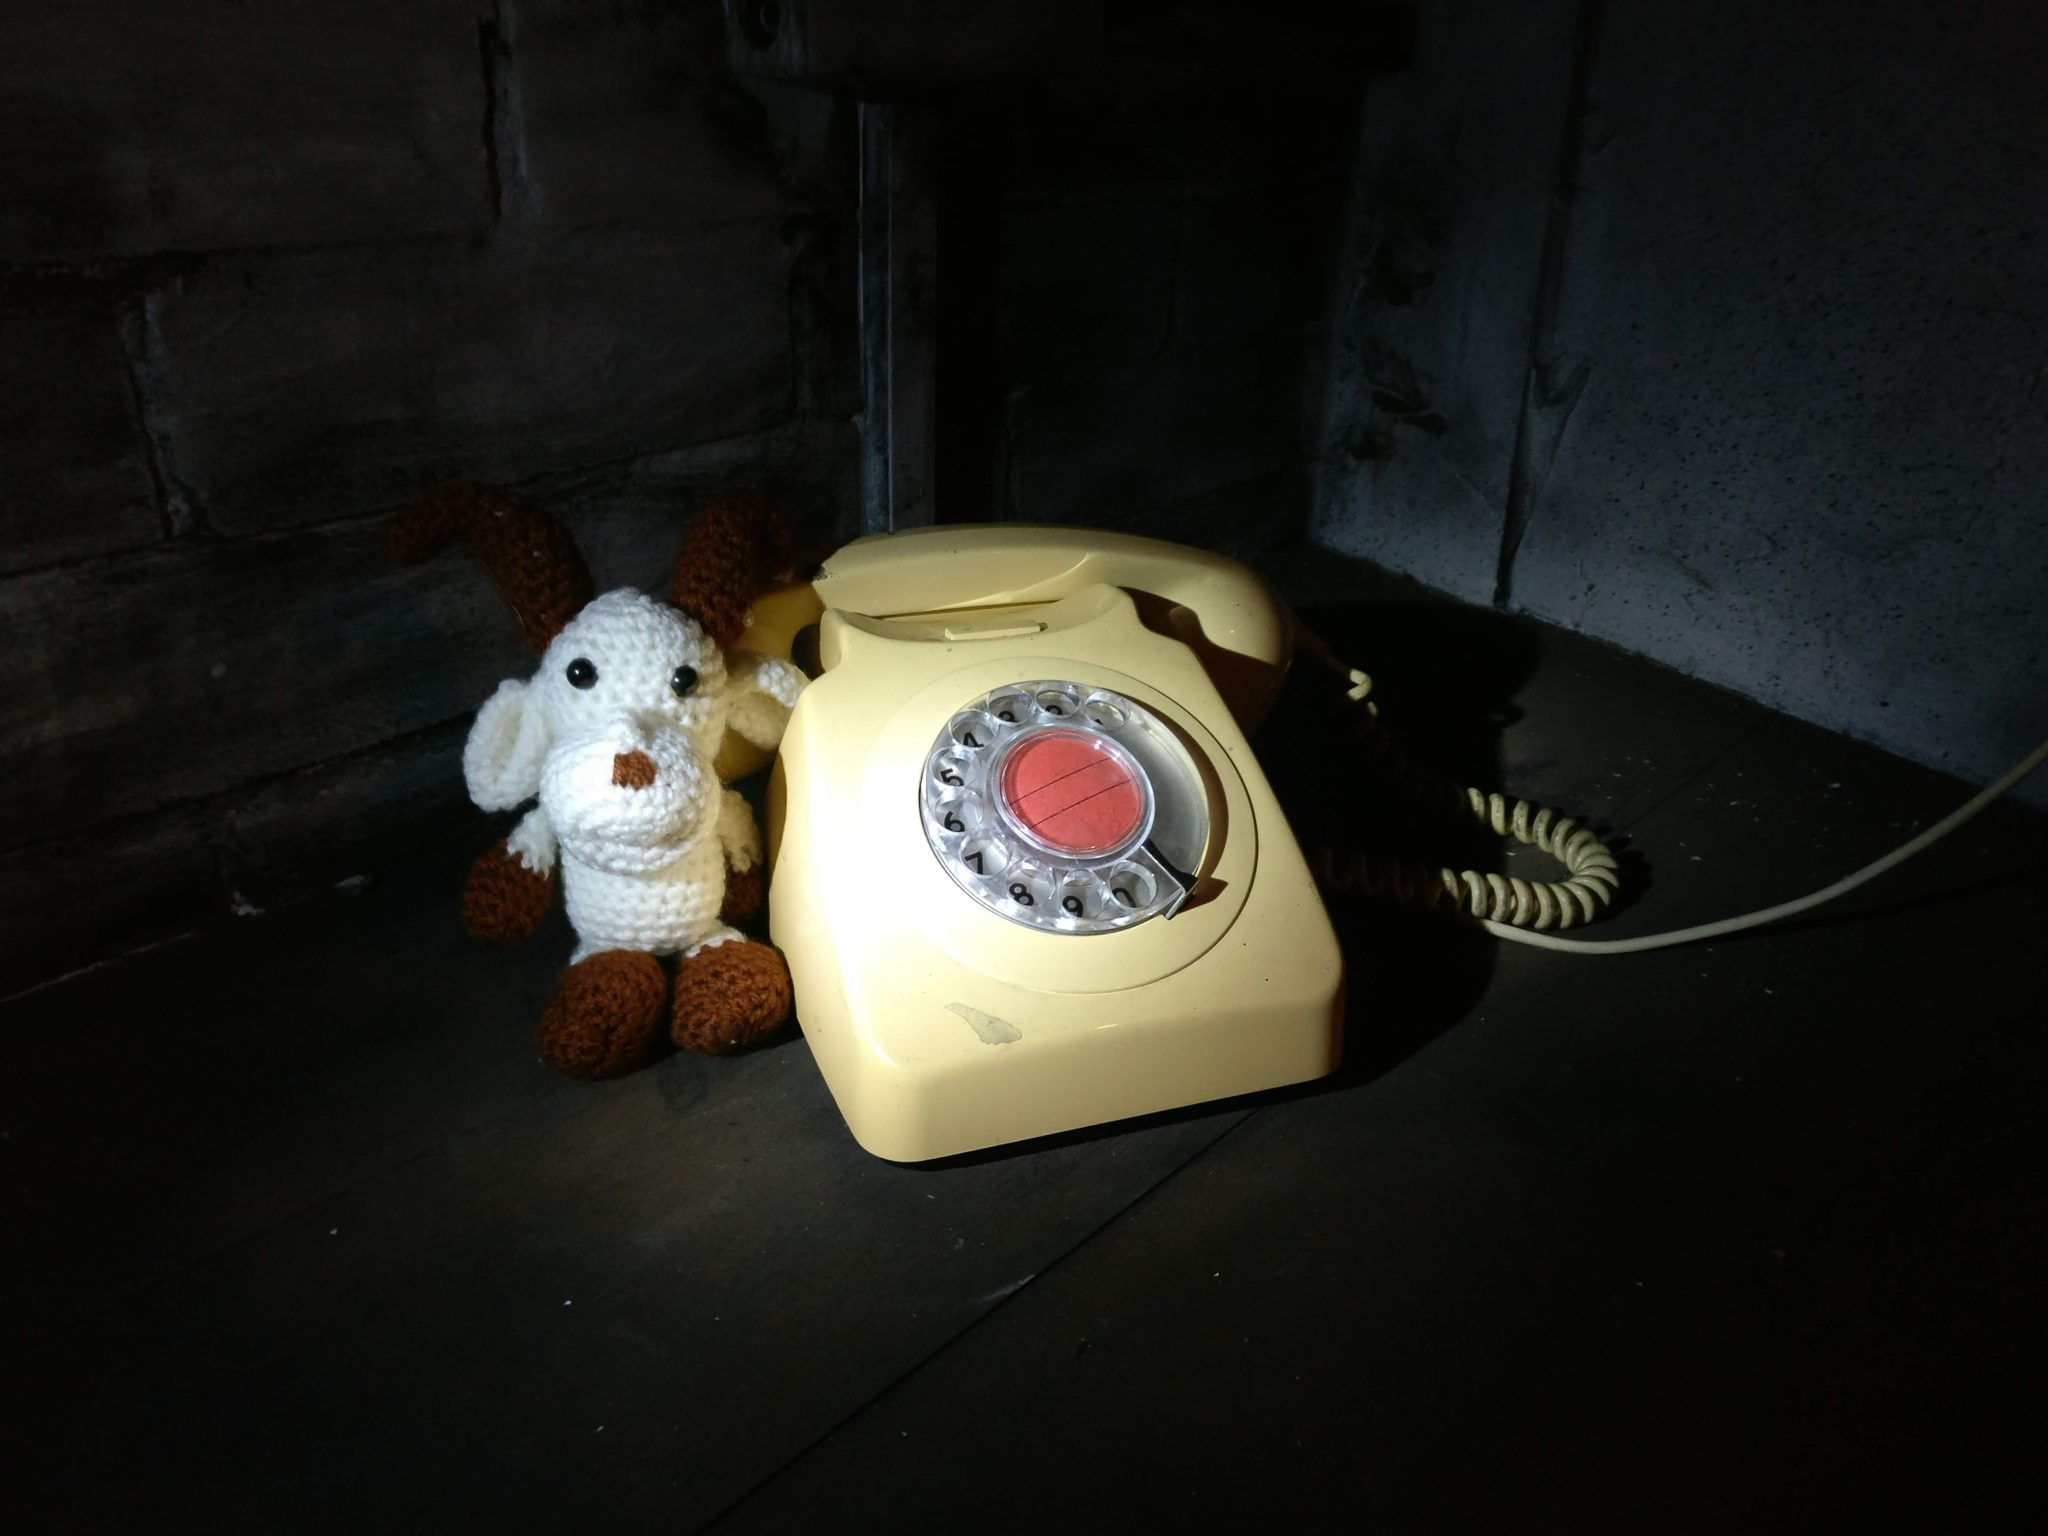 Gary the goat by the telephone inside the escape room